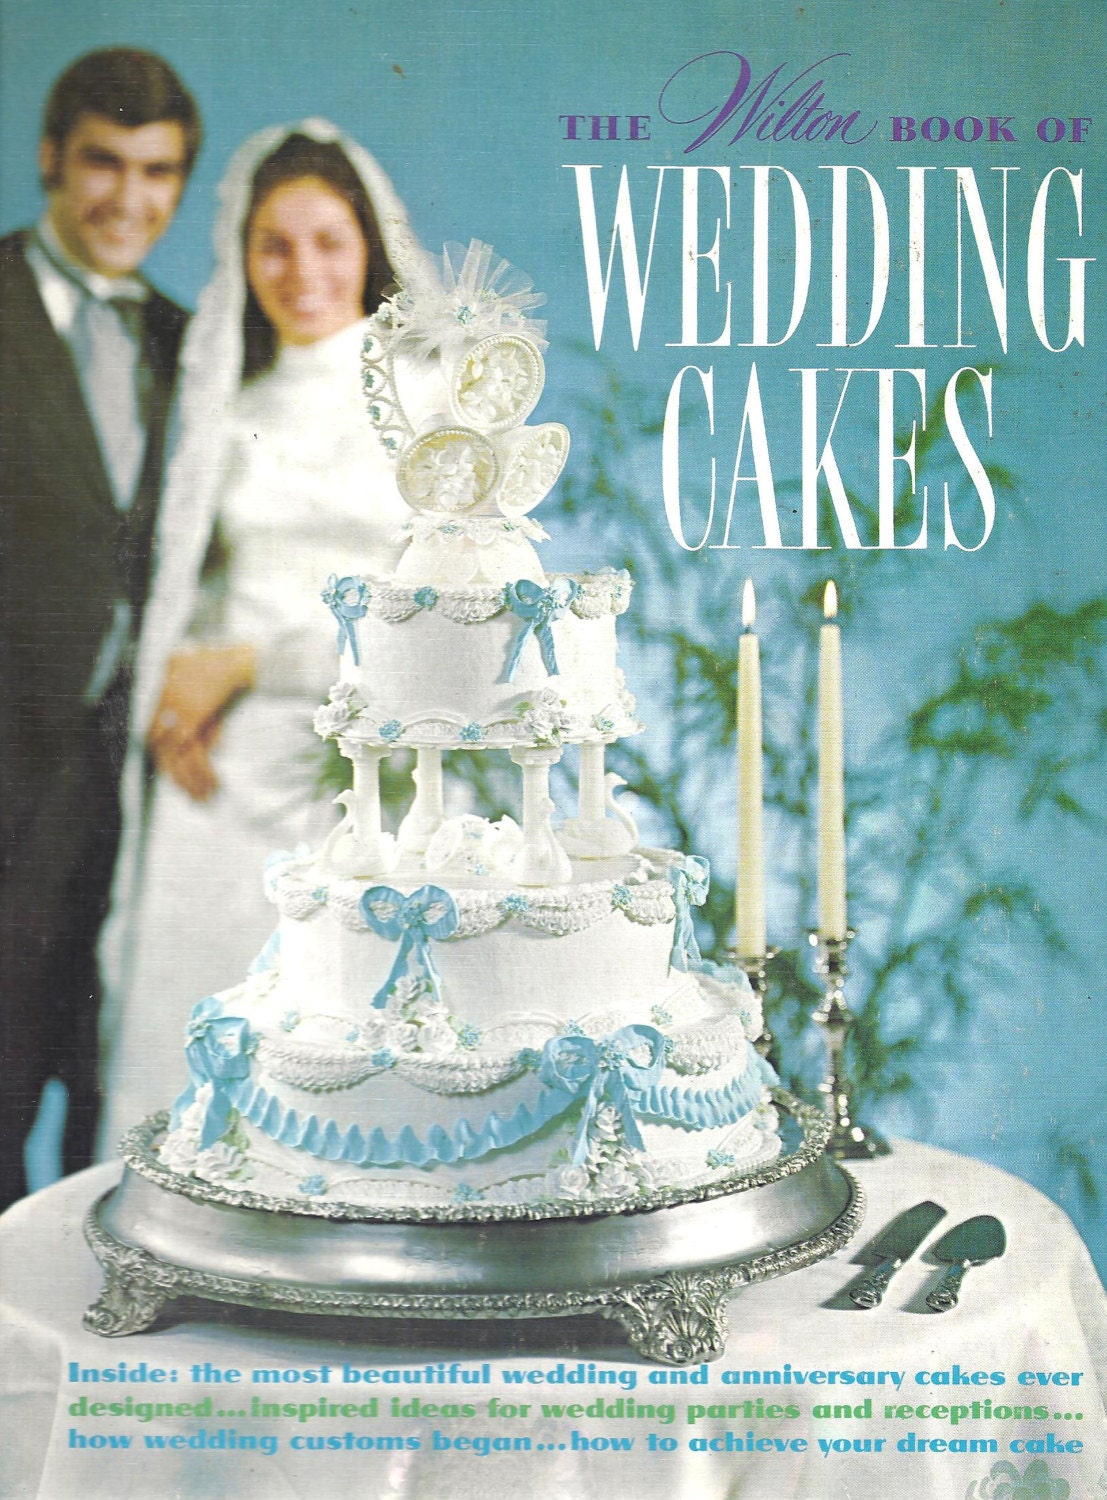 wedding cakes books the wilton book of wedding cakes 1970s cake decorating book 23923